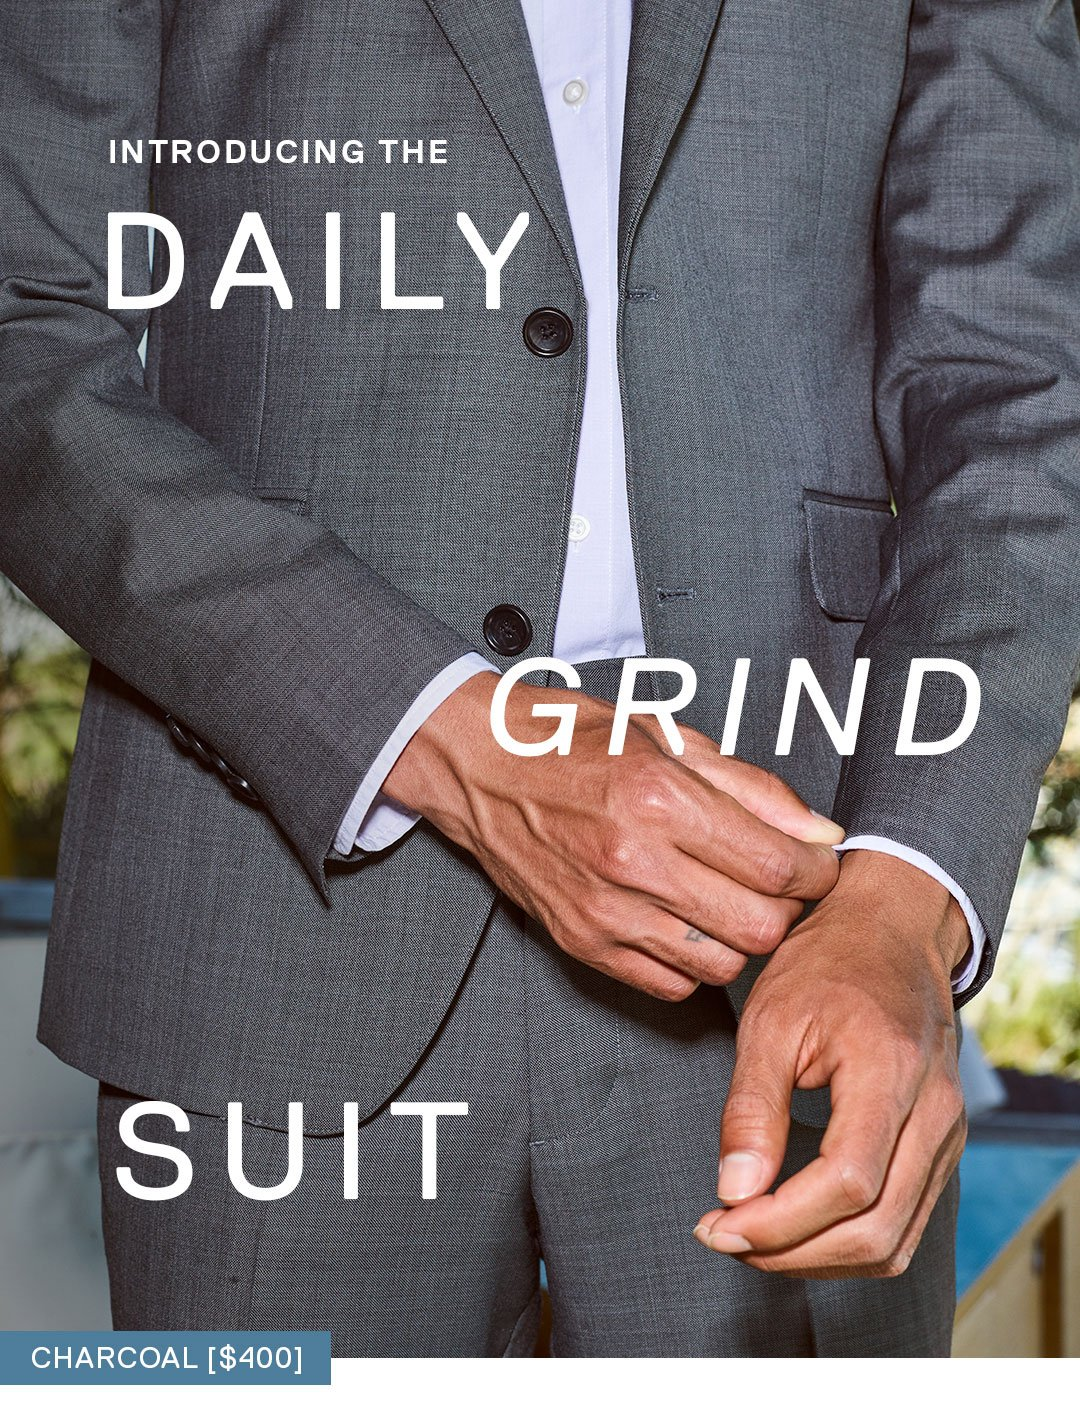 Introducing the Daily Grind Suit